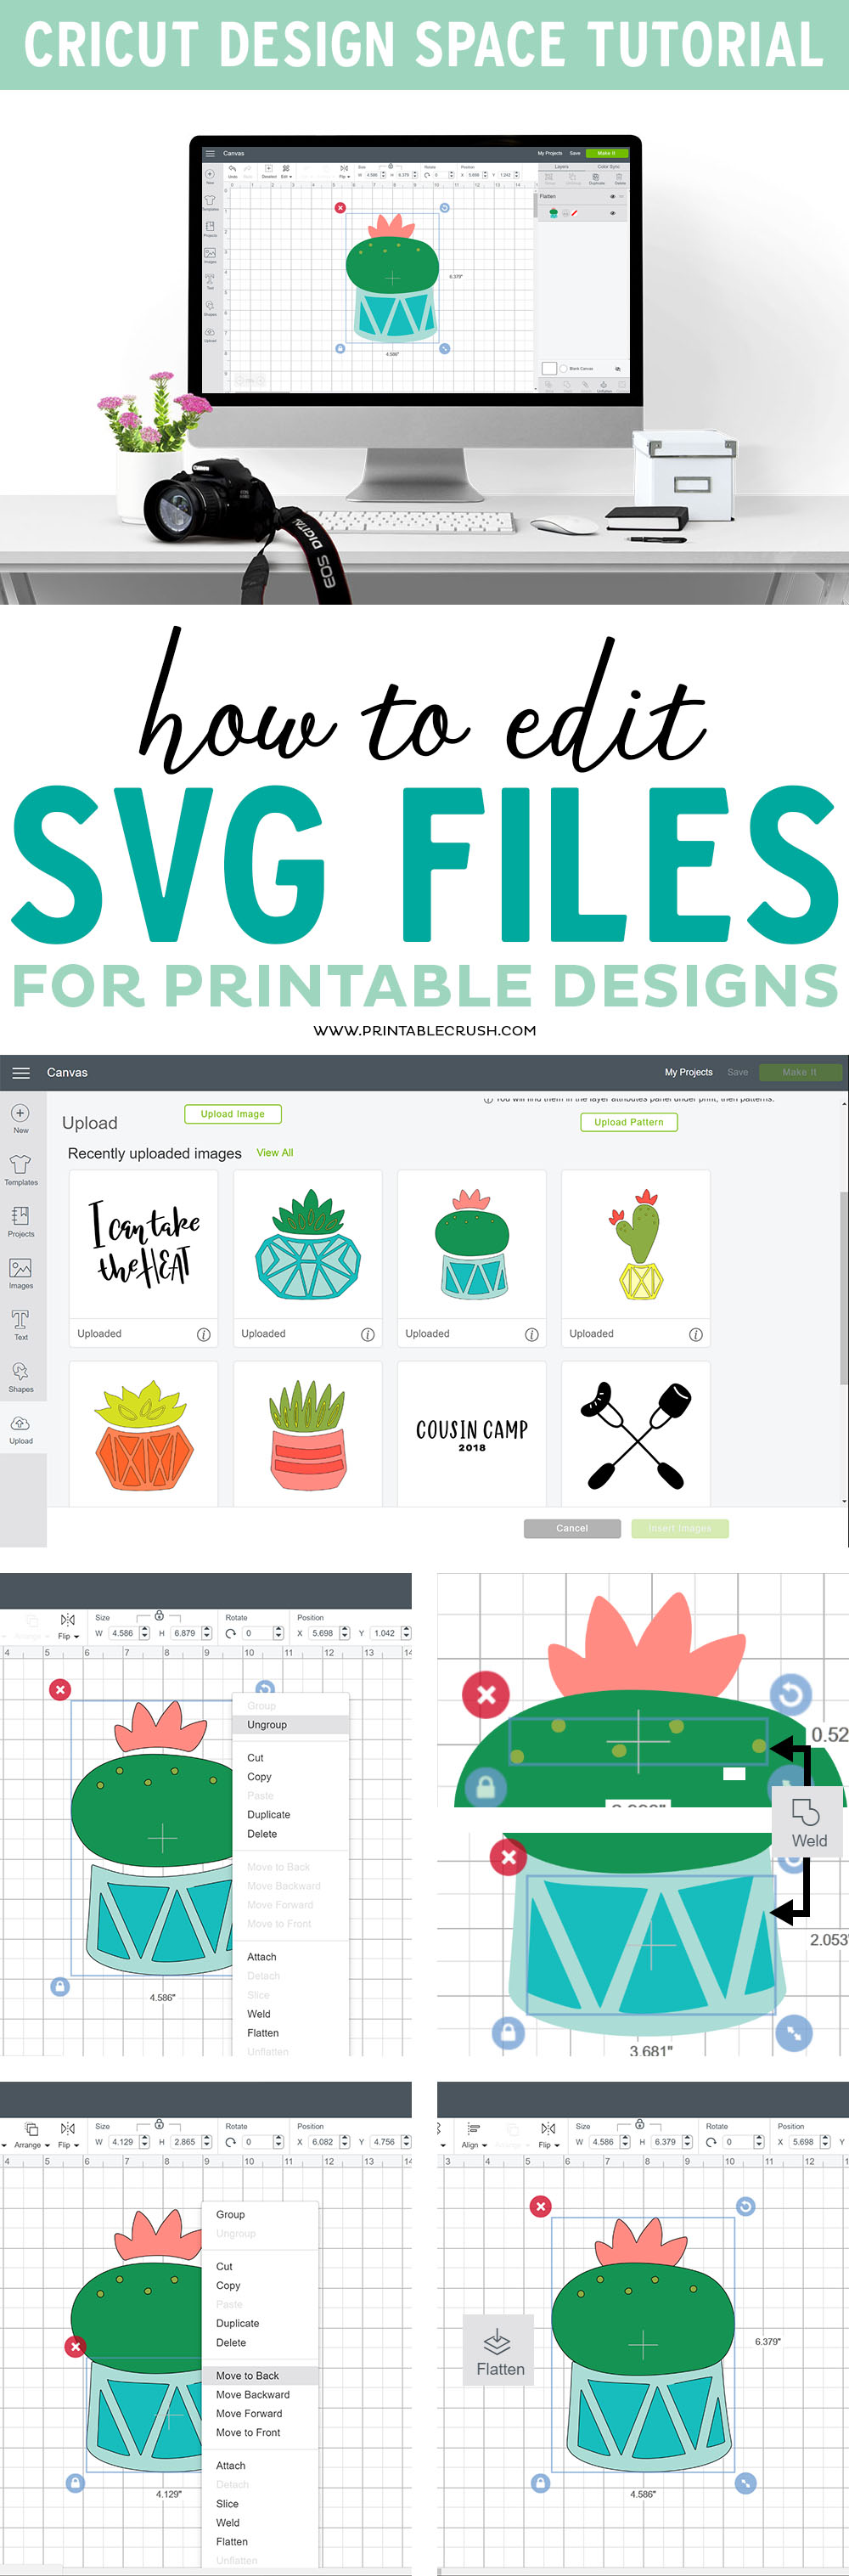 How to Edit SVG Files to use for Printable Designs